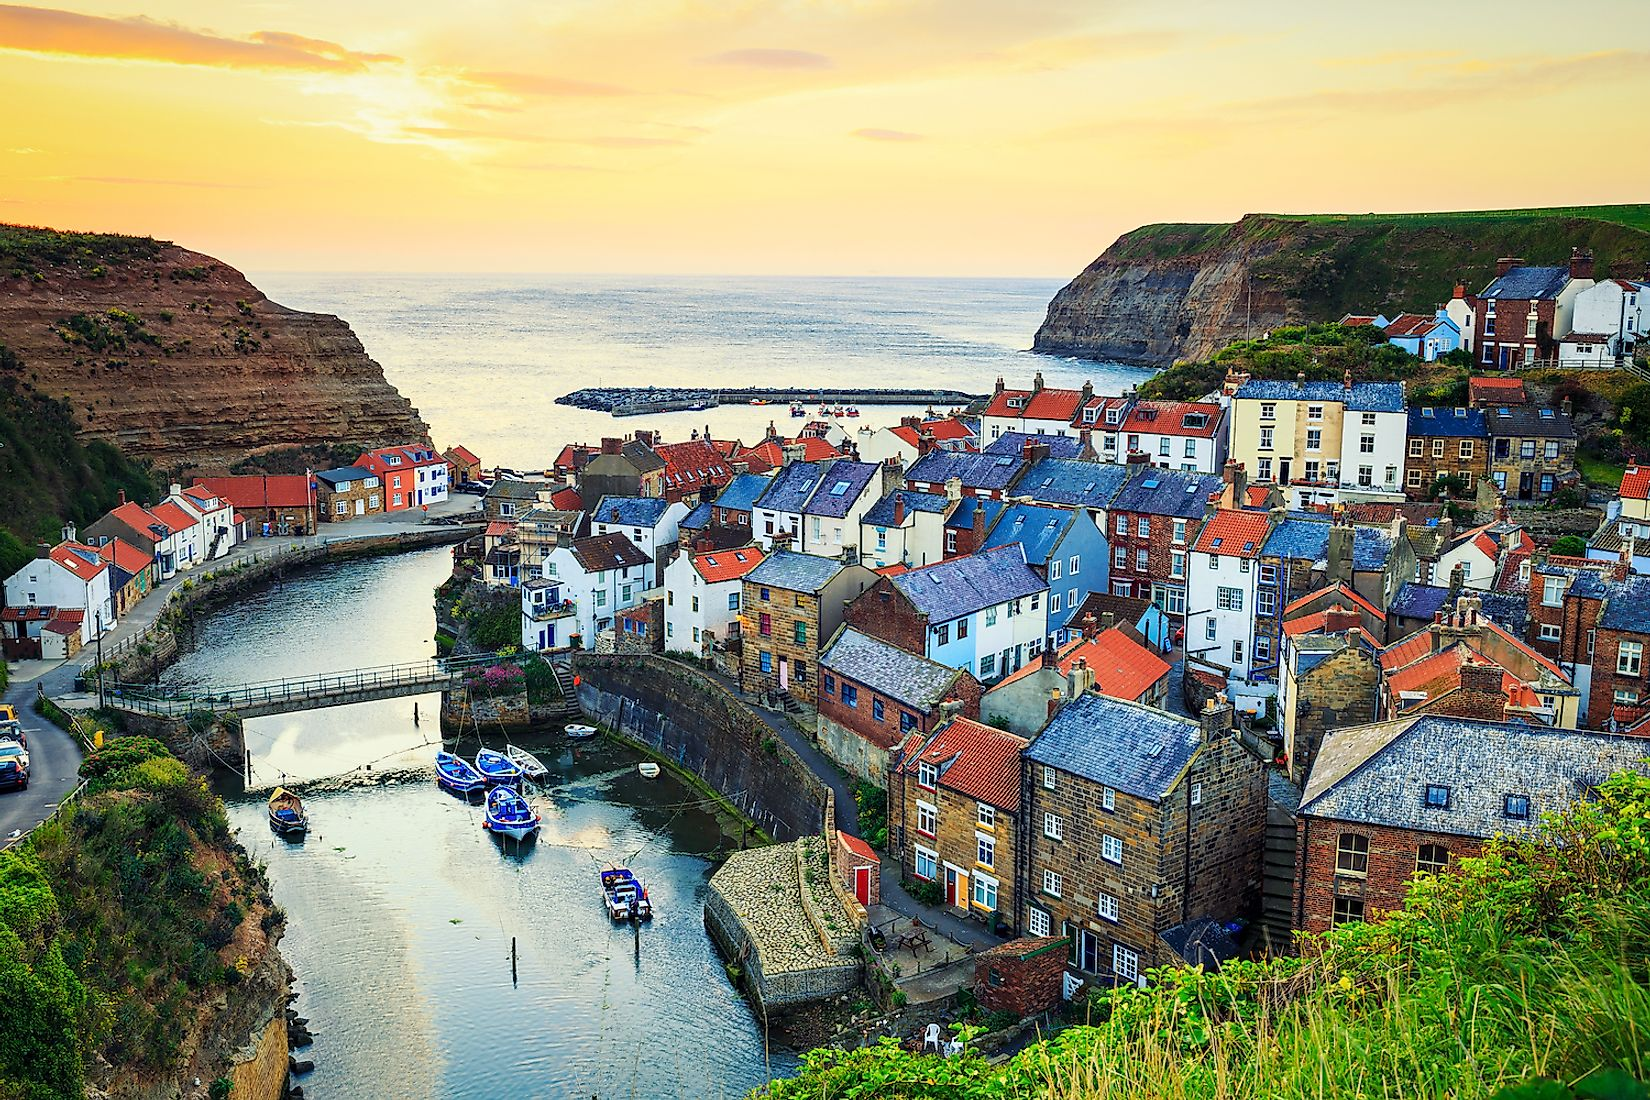 A quaint coastal town in Yorkshire, UK. Image credit: Lukasz Pajor/Shutterstock.com